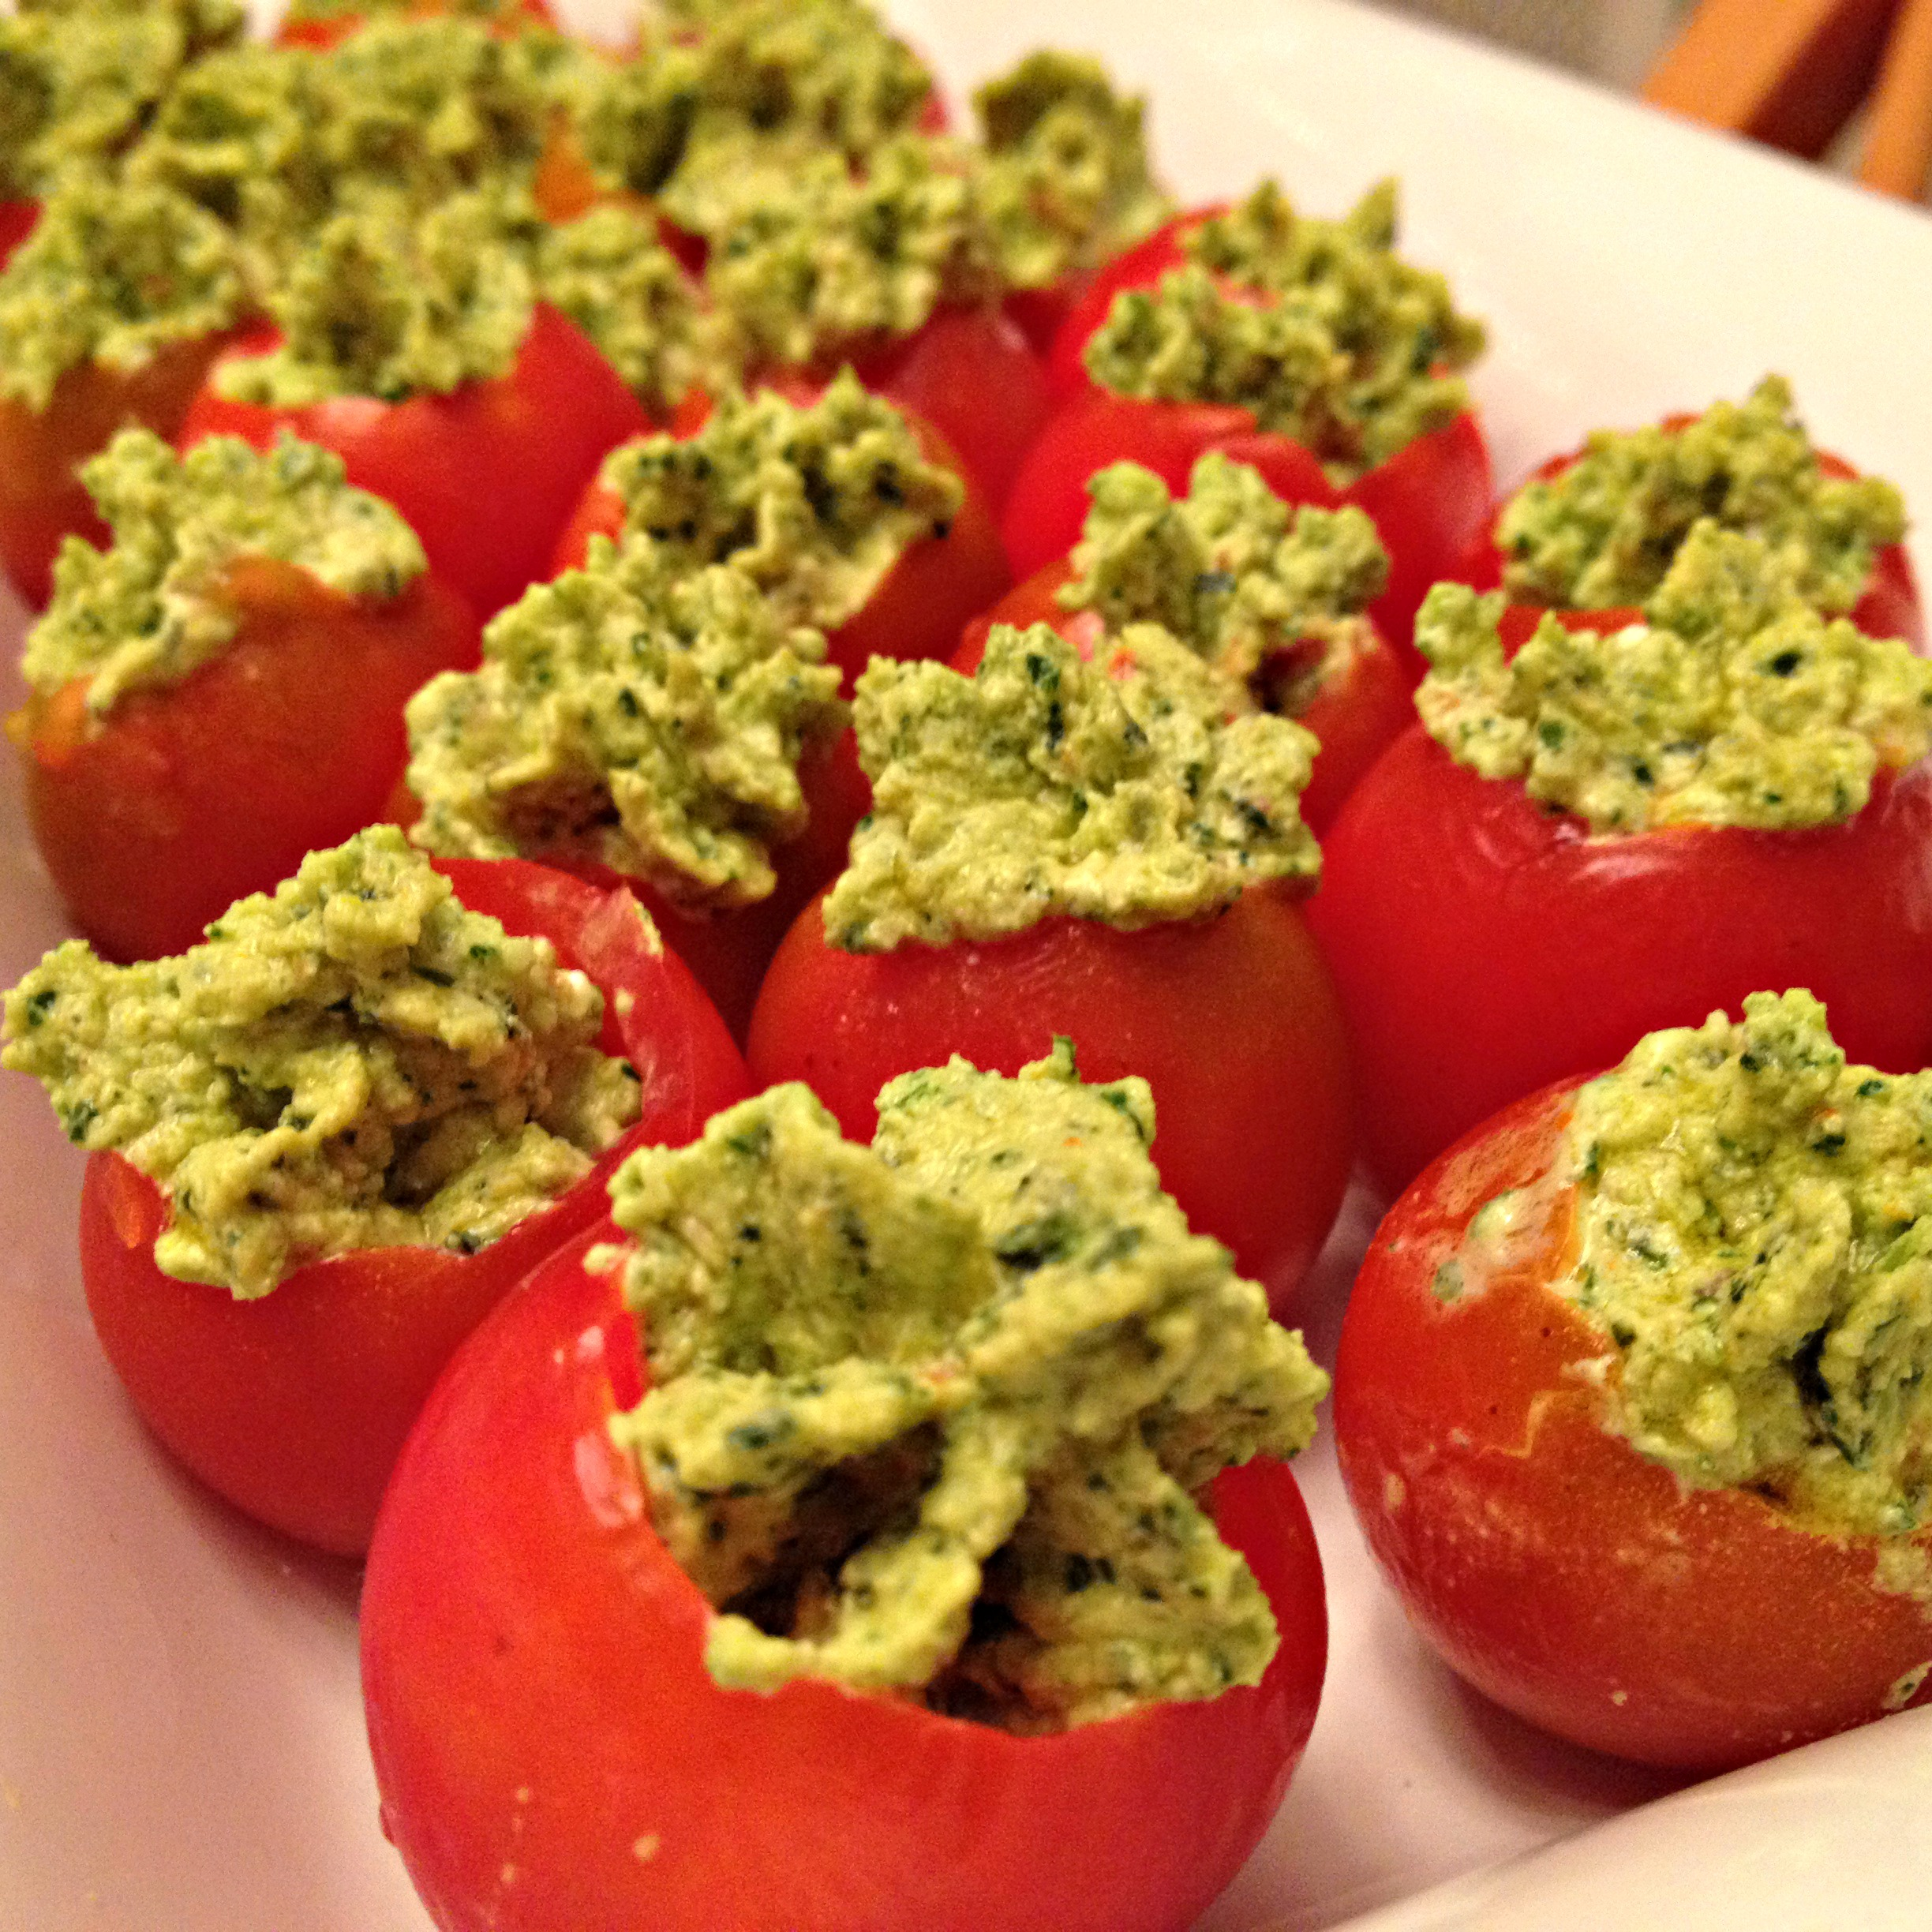 Pesto Stuffed Tomatoes